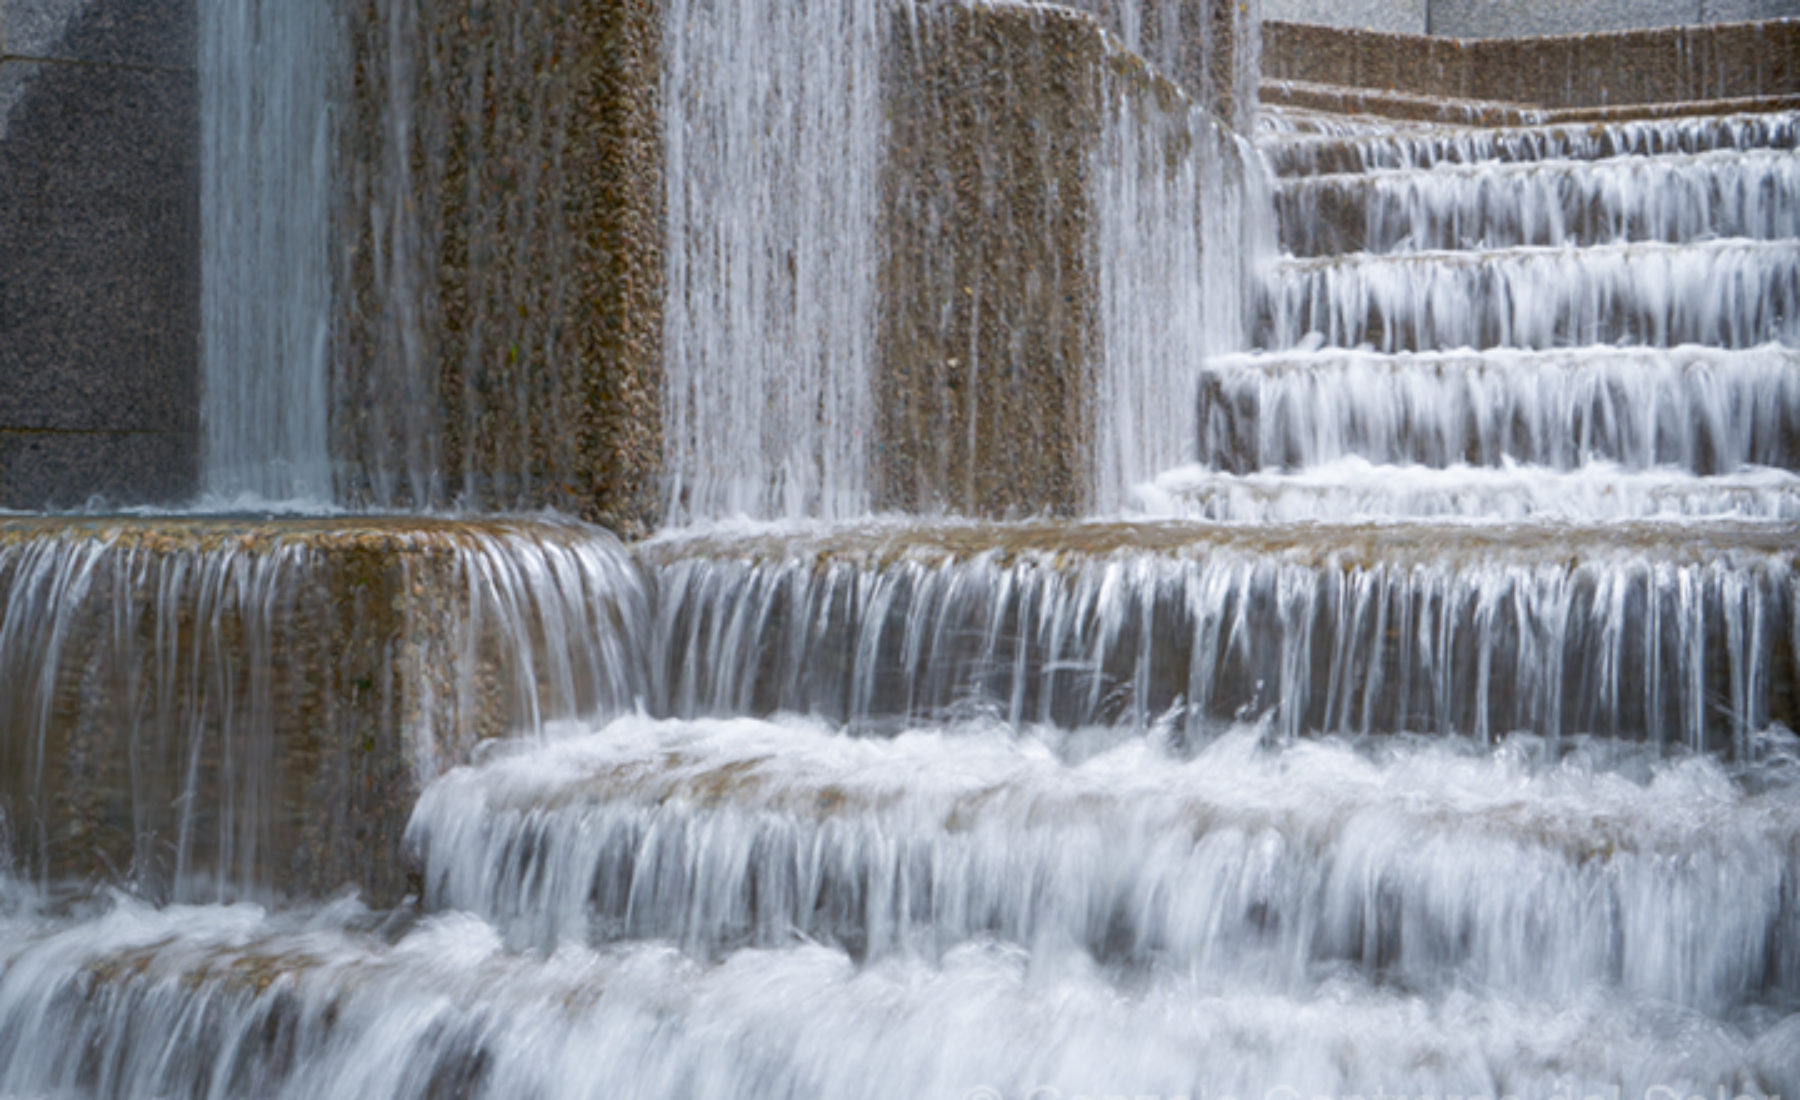 City water flow cascades